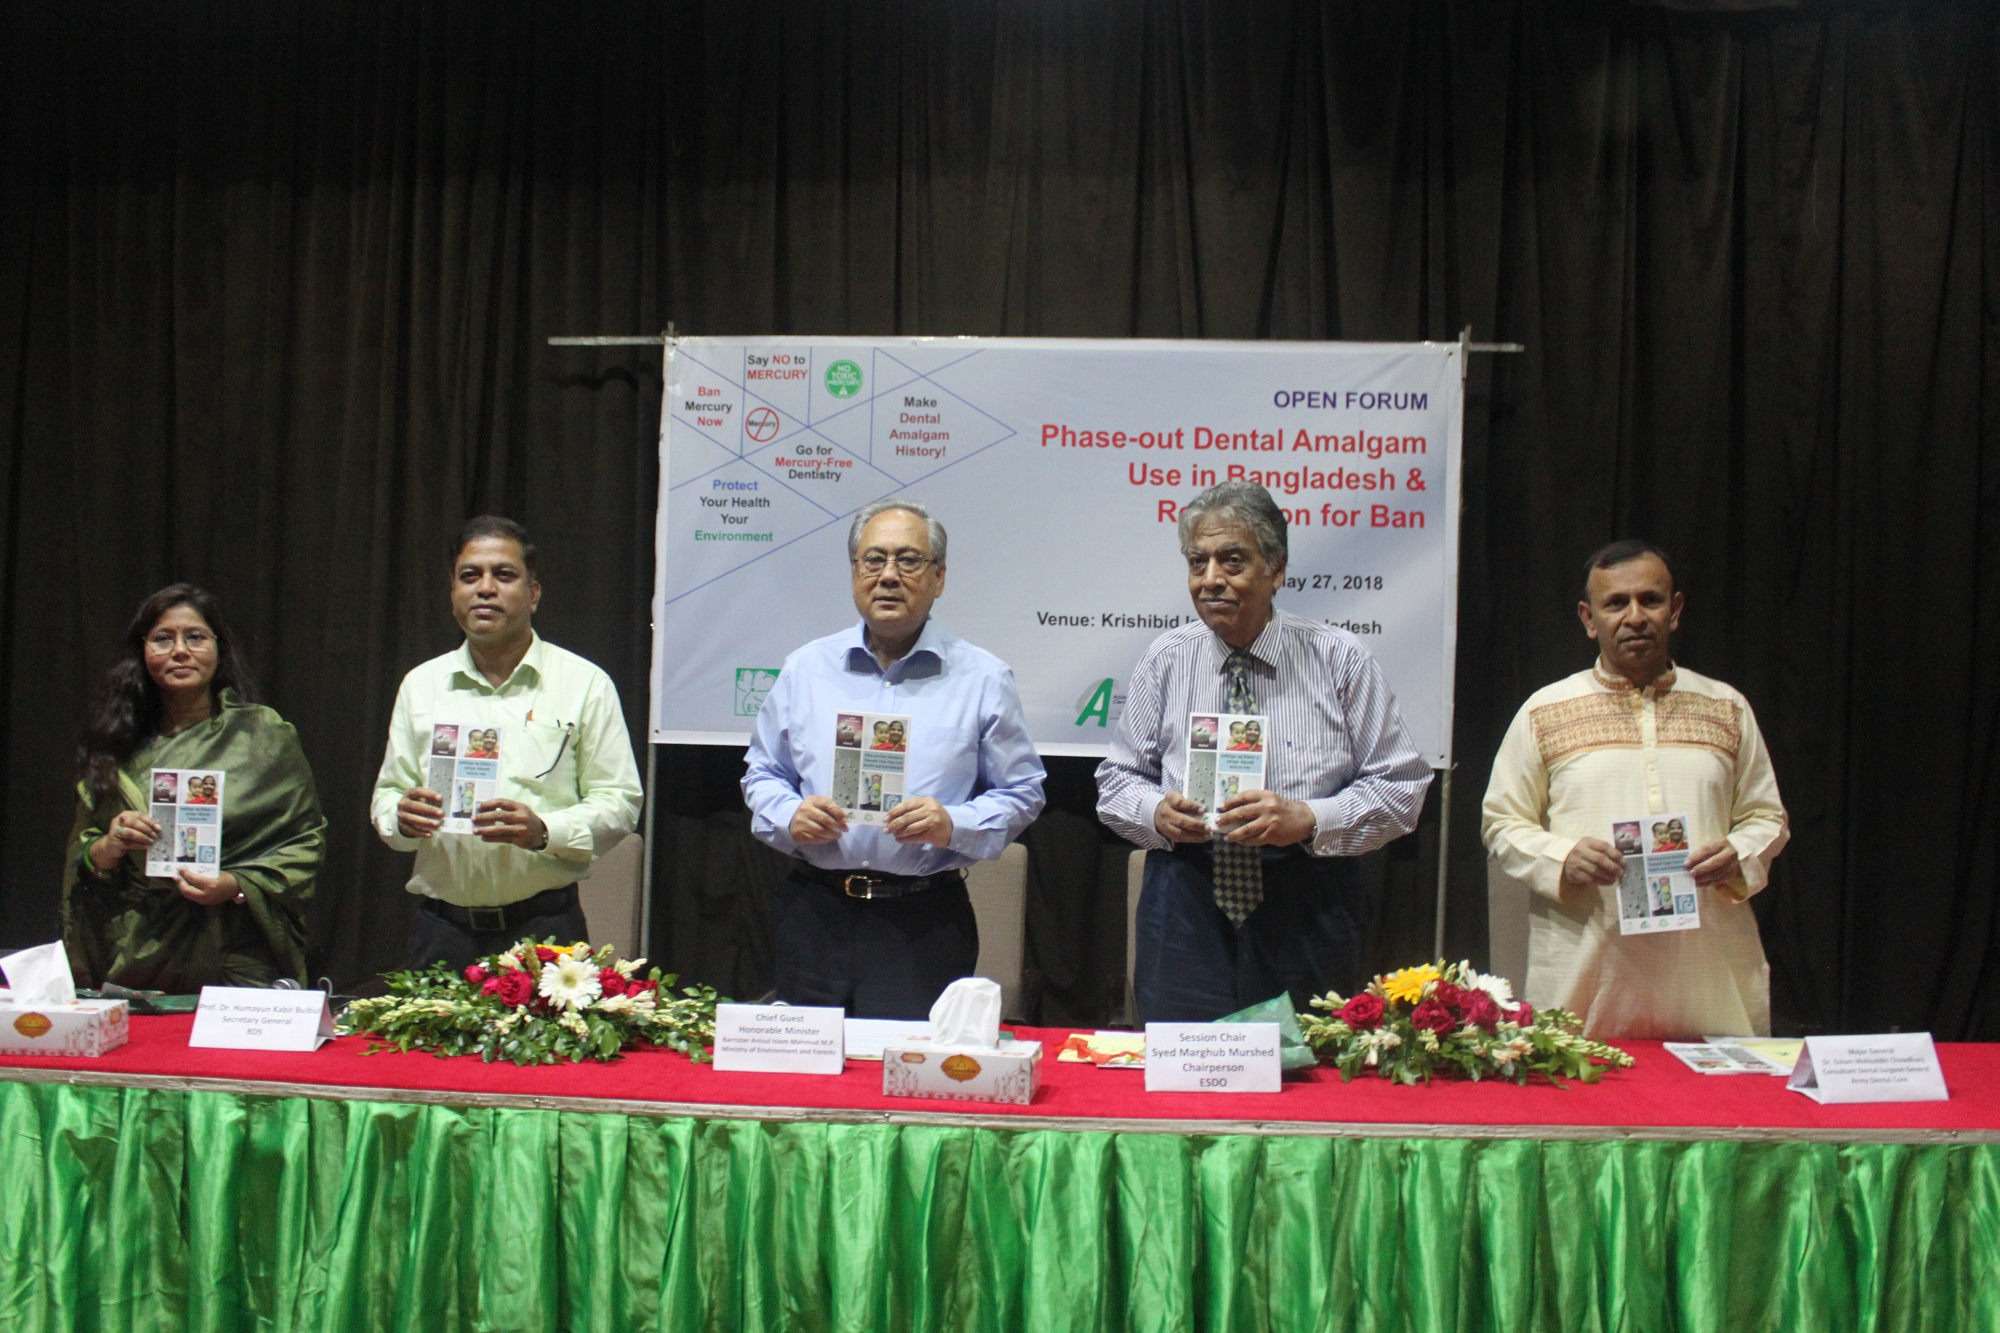 """Booklet Launched By Honorable Minister, M.P. Barrister Anisul Islam Mahmud, M.P., in an Open Forum Entitled """"Phase Out Dental Amalgam Use in Bangladesh & Regulation for Ban"""""""